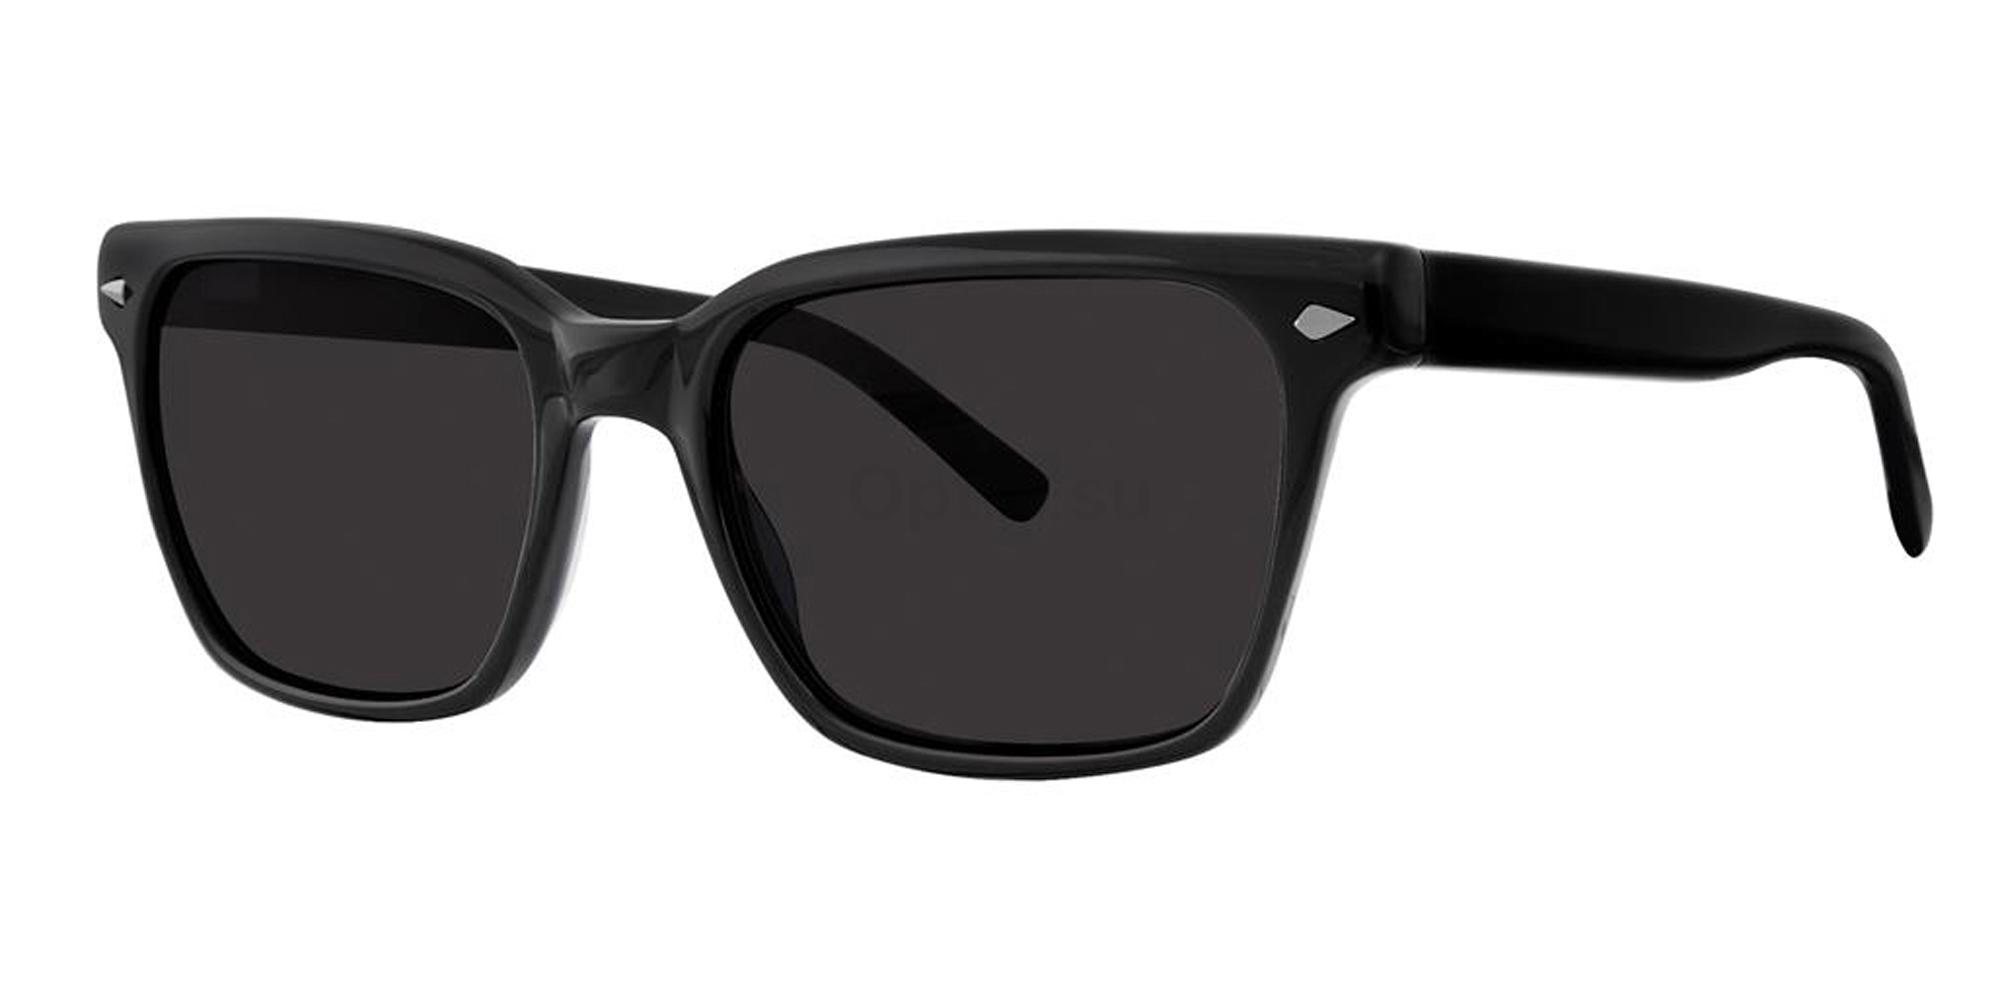 Black CLASSON Sunglasses, Zac Posen